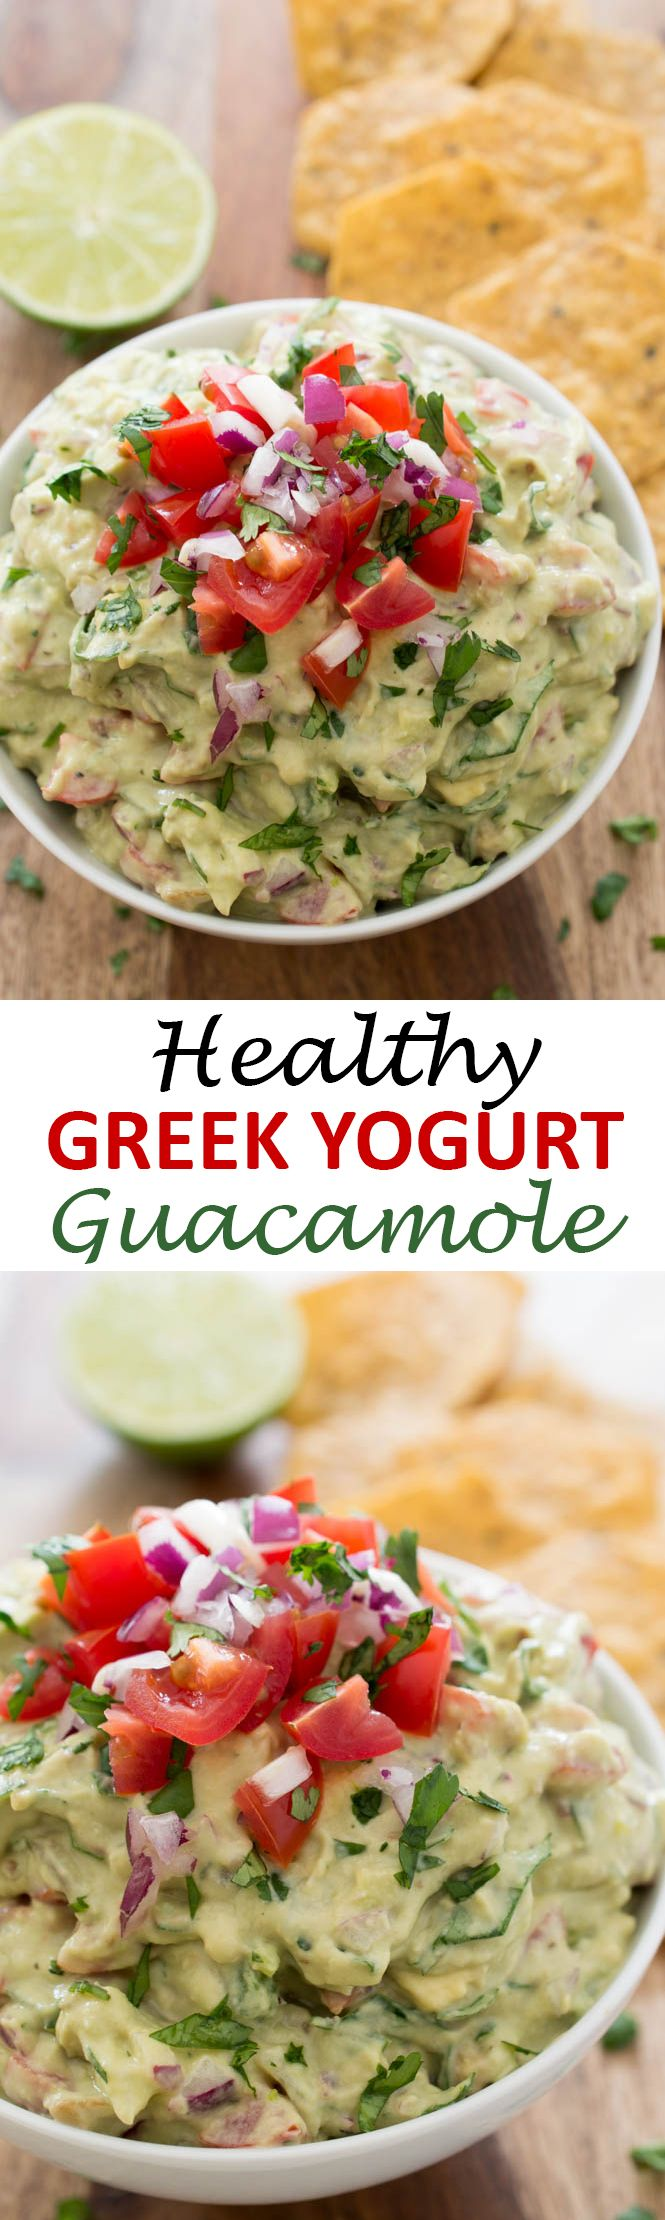 This Healthy Greek Yogurt Guacamole takes less than 10 minutes to make and is the perfect appetizer or snack. | chefsavvy.com #recipe #appetizer #guacamole #avocado